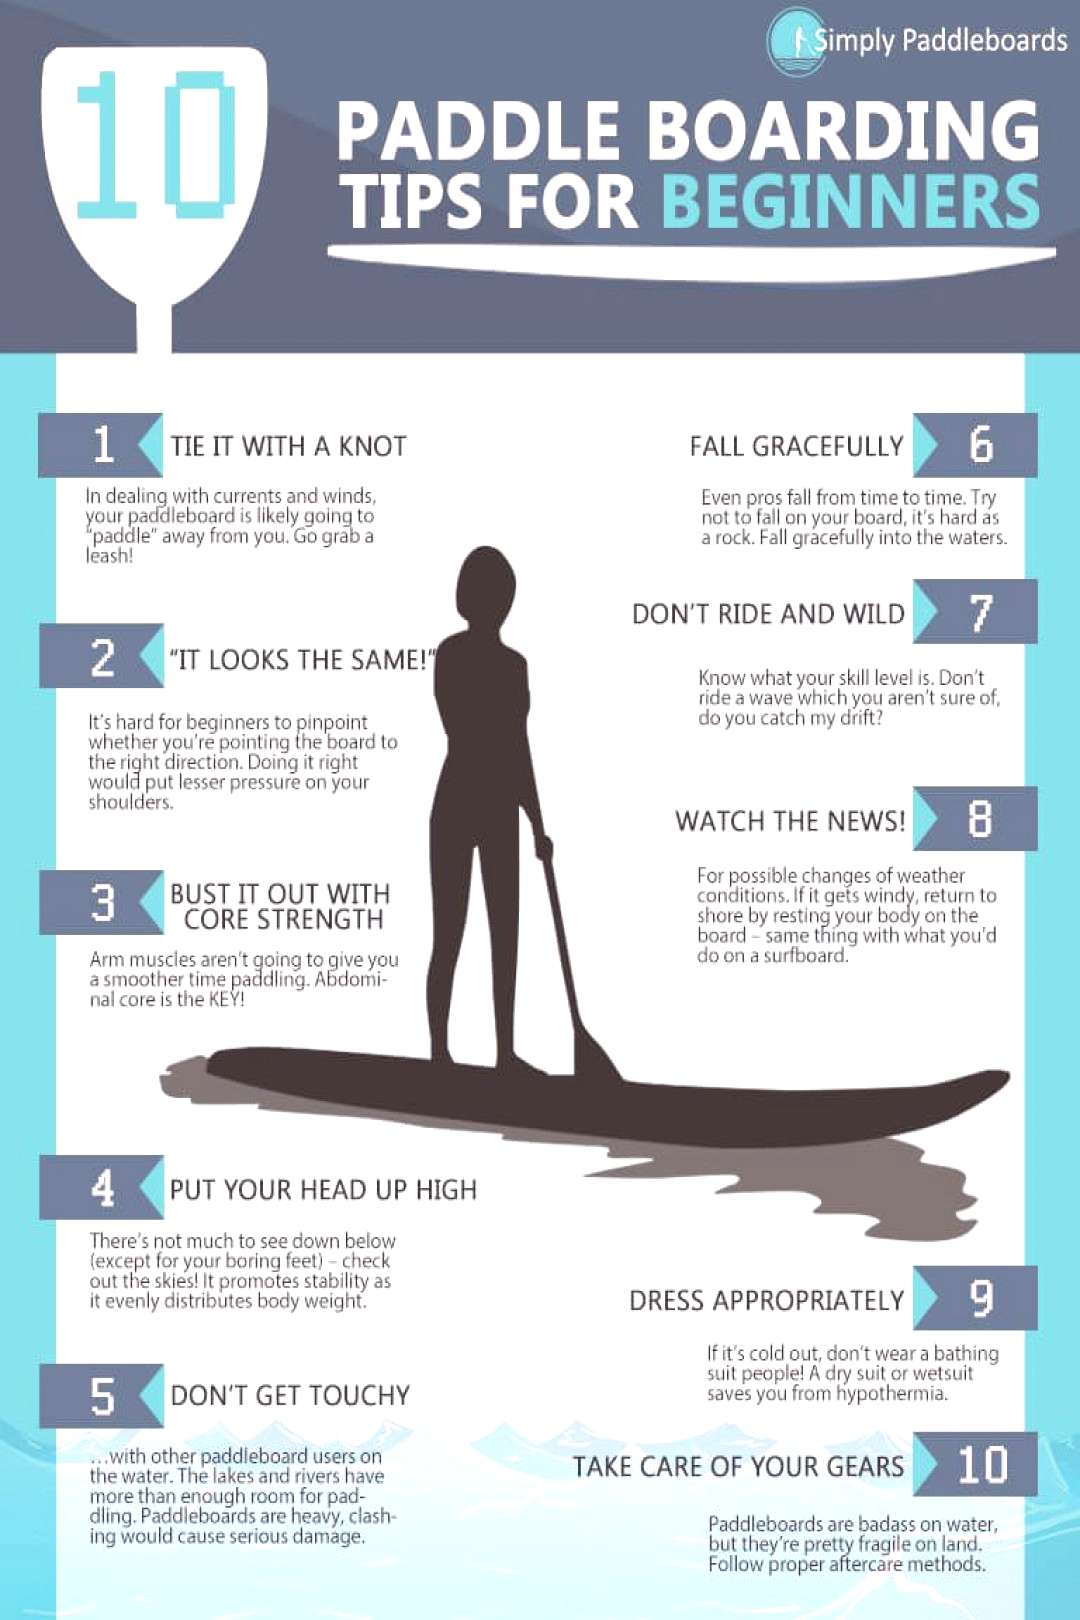 Top 10 Paddle Boarding Tips for Beginners